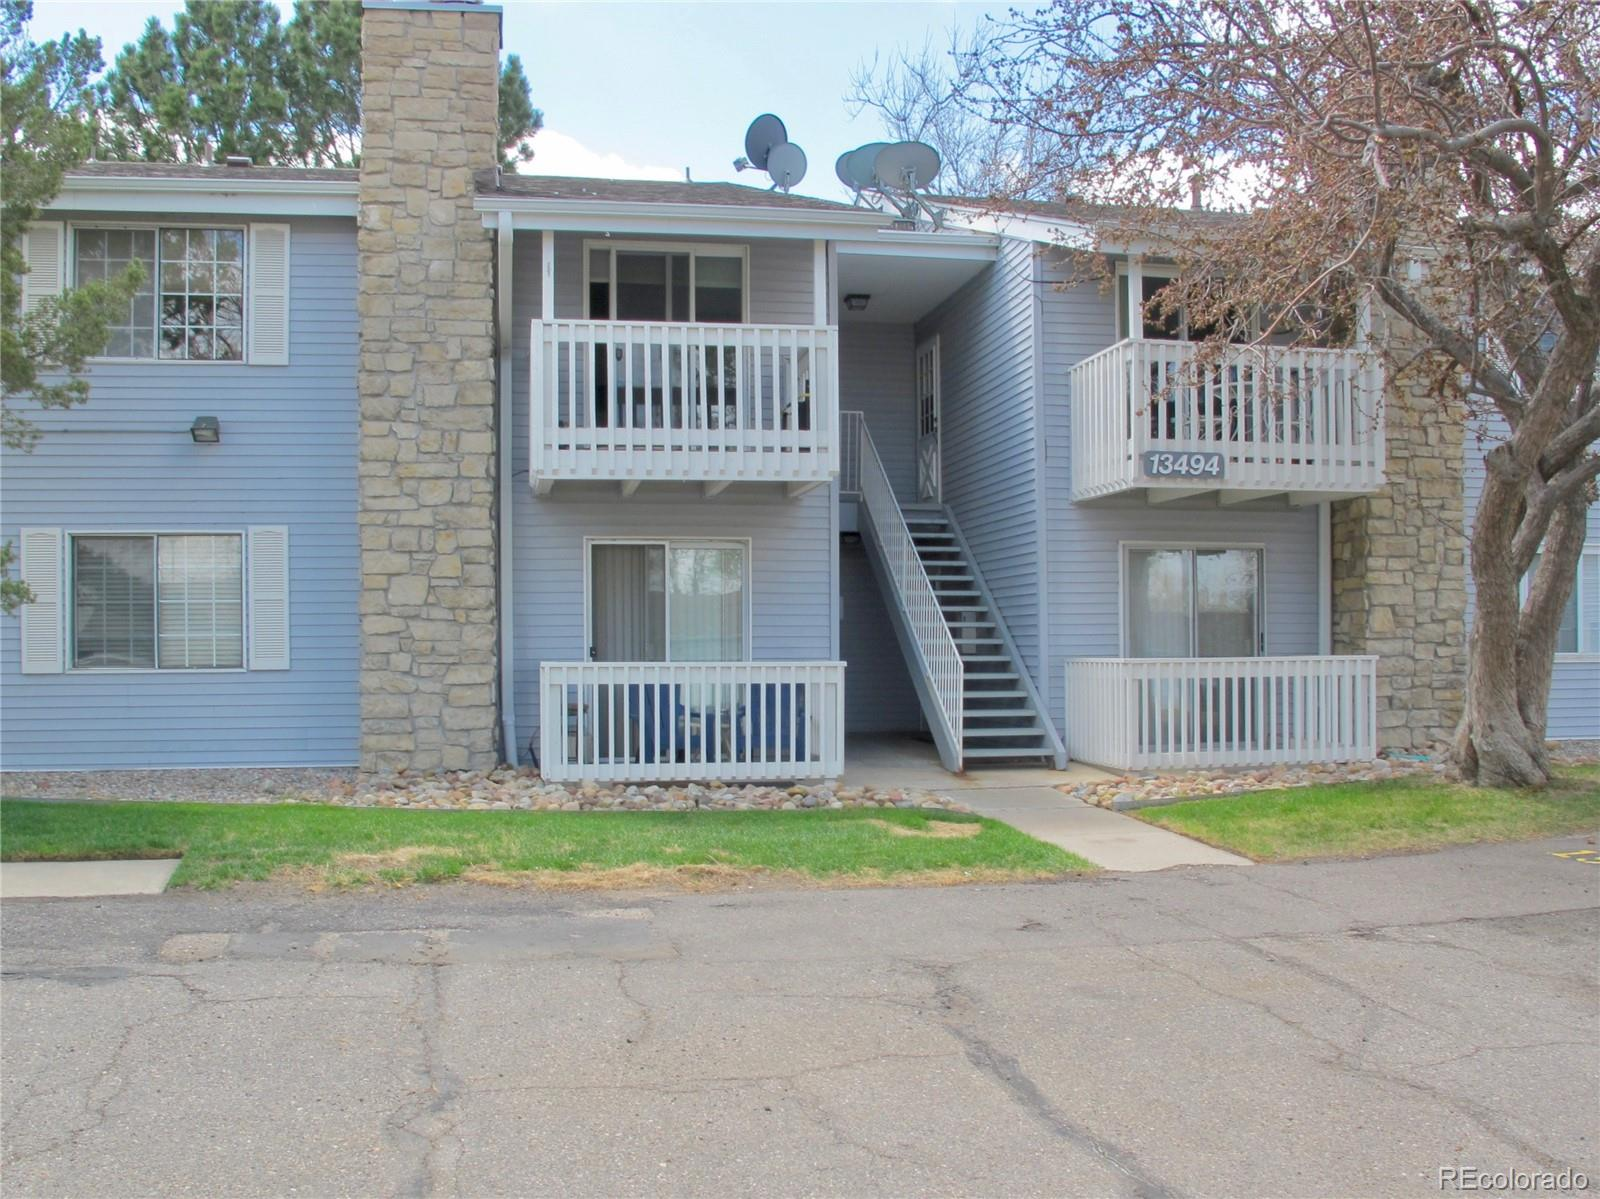 Well maintained 2 bedroom/2 bathroom condo in Brandychase complex. Tons of closet space in bedrooms. Nice kitchen with dining area and plenty of cabinets. Enjoy the second floor balcony in the summer and the cozy fireplace in the winter. Newer carpet and updated bathrooms. Across from walking/ bike path. Close to I-225, Light Rail, golf courses, parks, shopping and great restaurants. Cherry Creek school district. ***One year Home Owner Warranty Plan from 2-10 Home Warranty provided to buyer.***